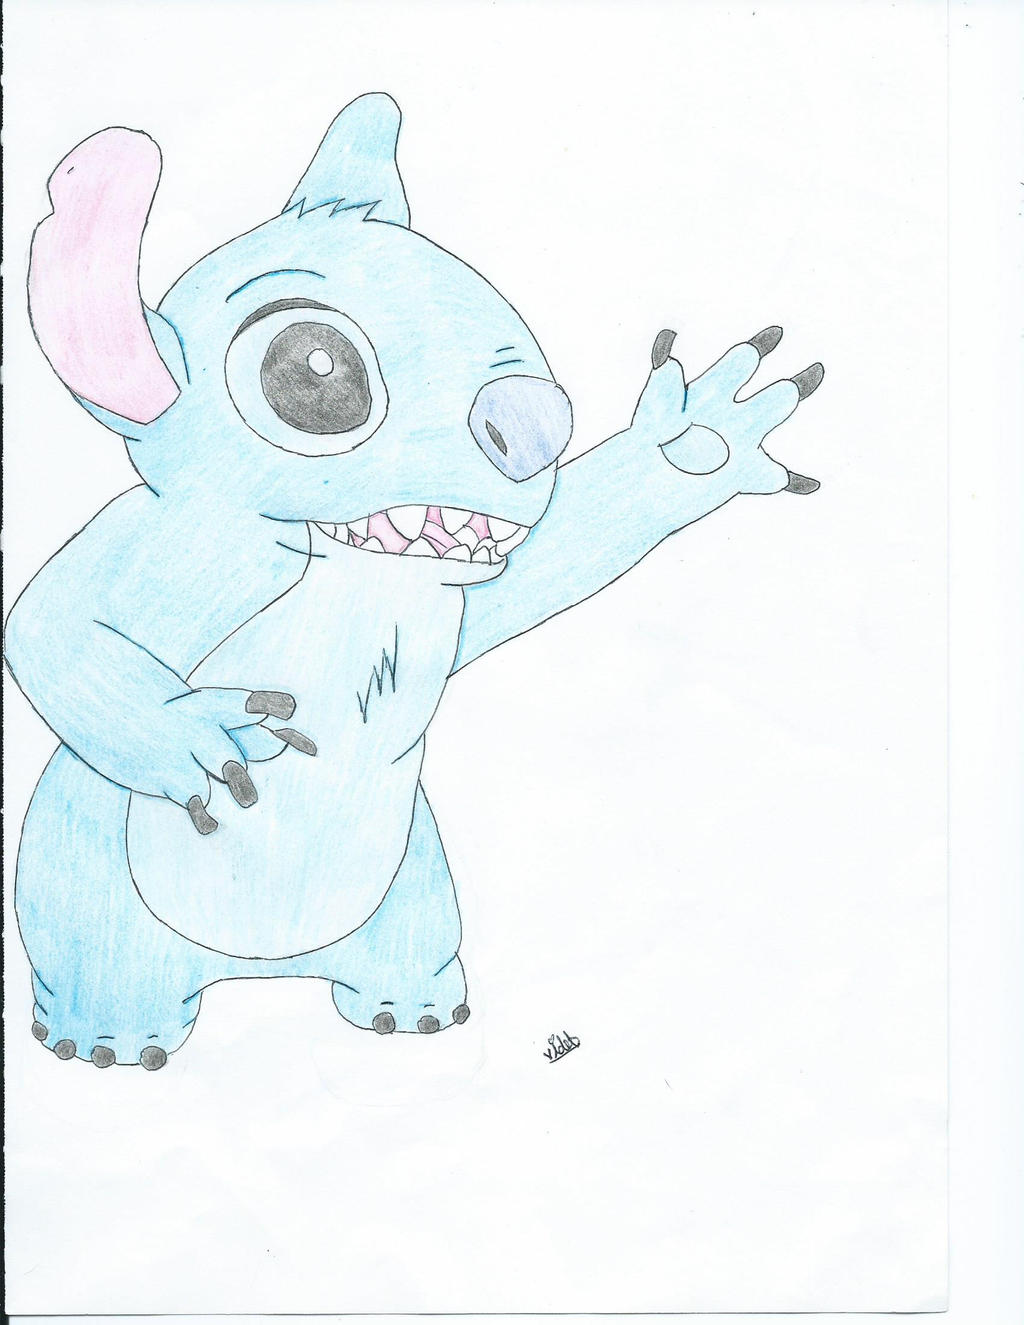 Stitch by violetemo16